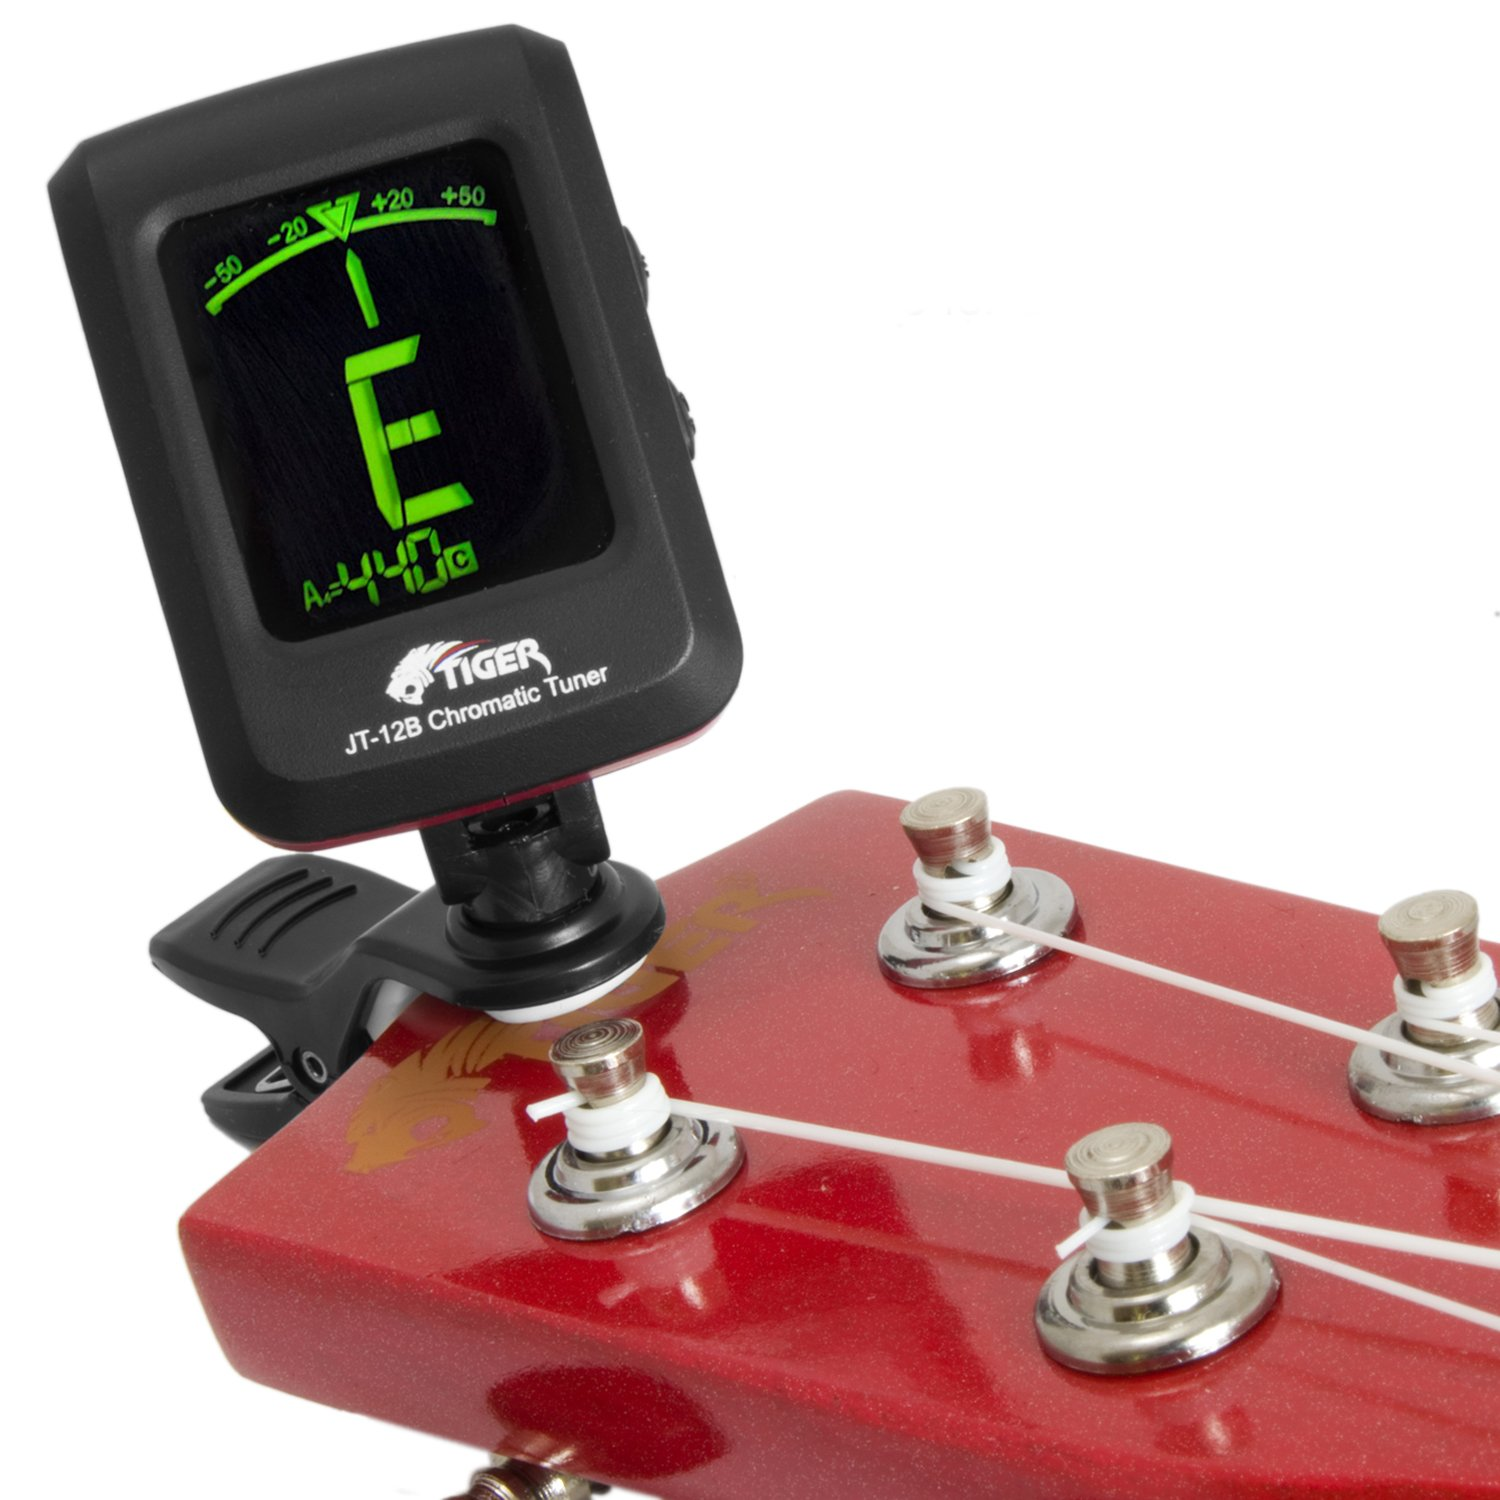 Tiger Chromatic Guitar Tuner - Easy to Use Highly Accurate Clip-on Tuner - Suitable for Guitar/Bass / Violin/Ukulele - Battery Included Tiger Music JT-12B